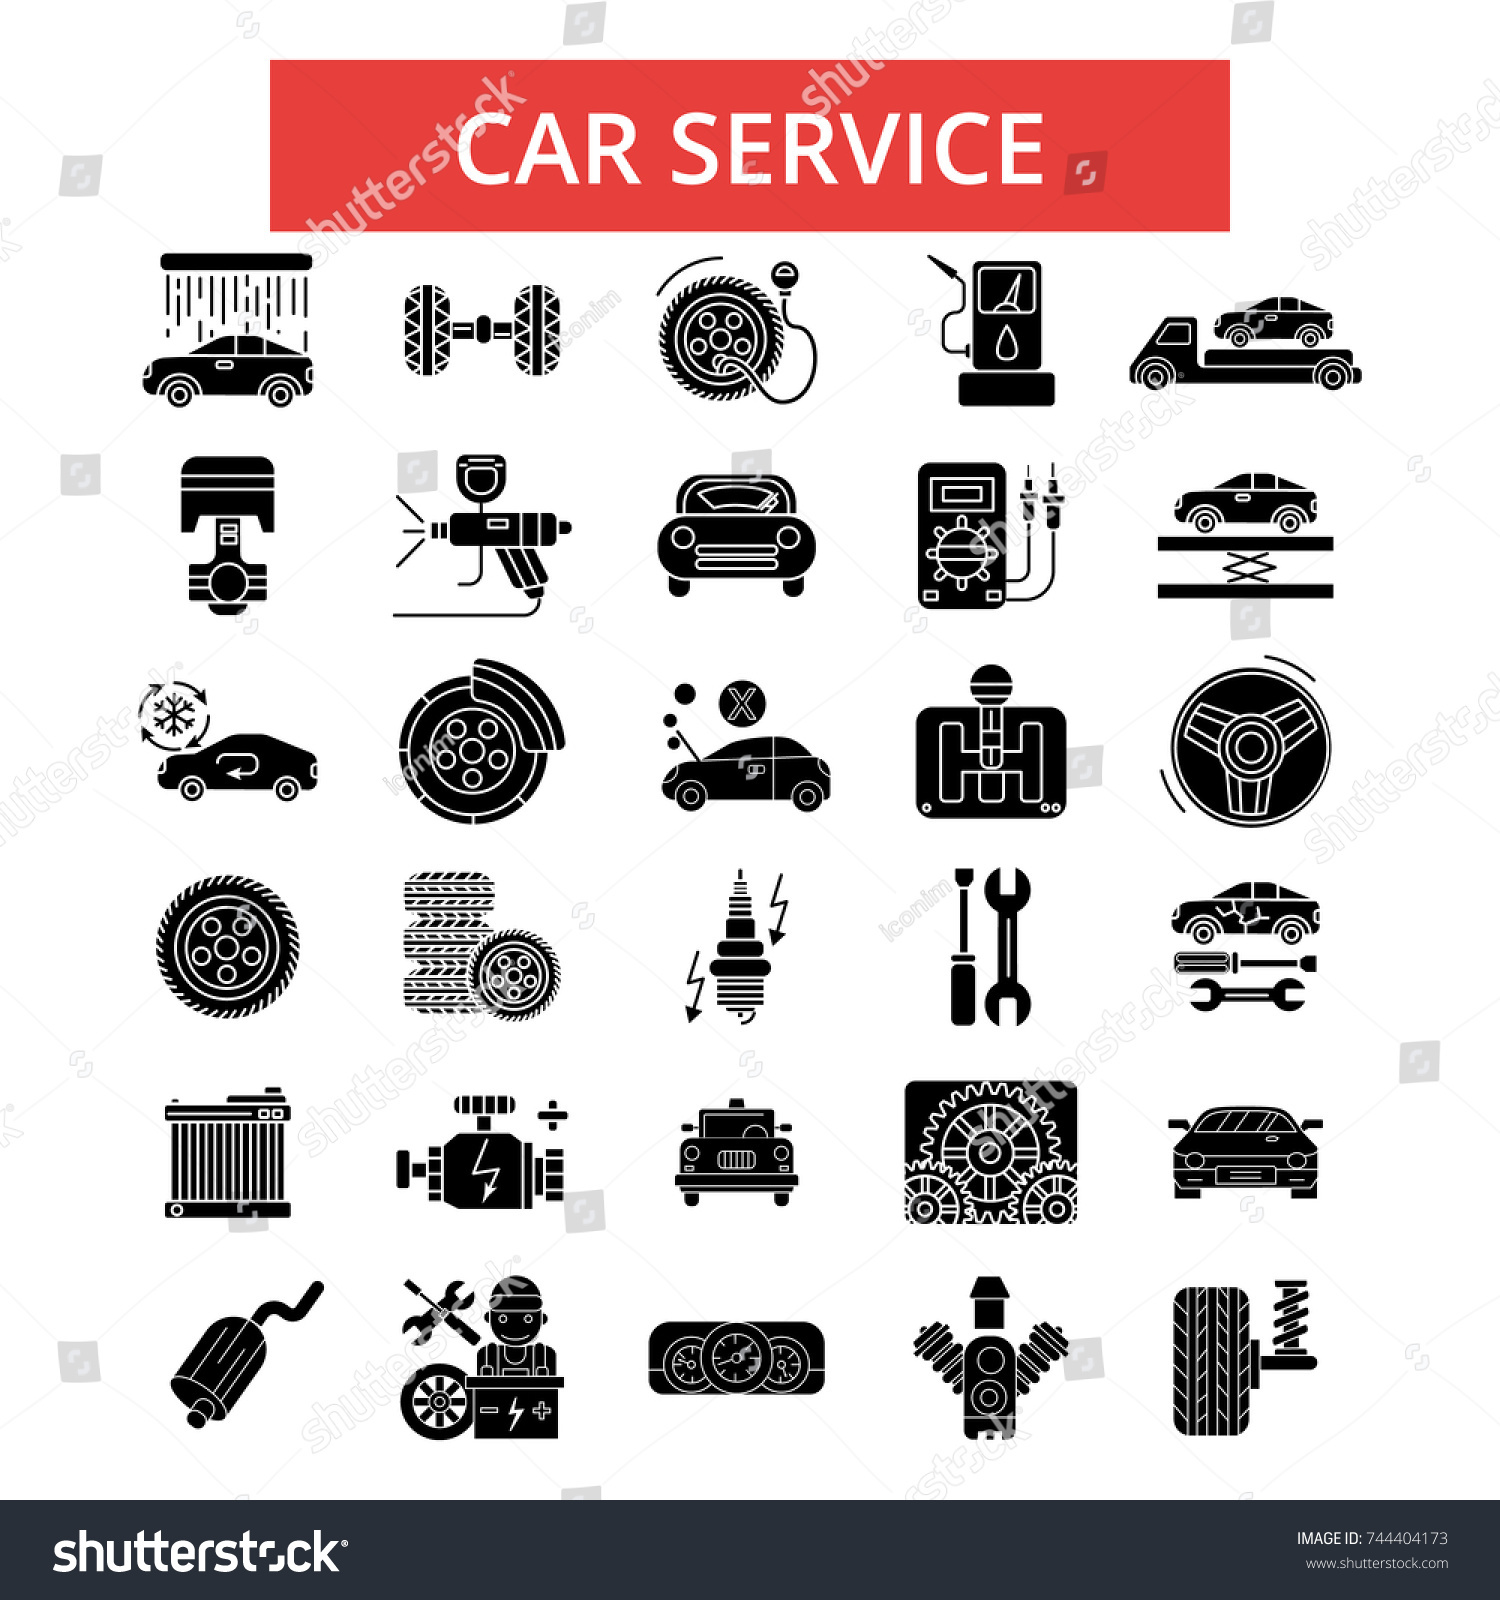 Car Service Illustration Thin Line Icons Stock Vector - Car signs and symbols